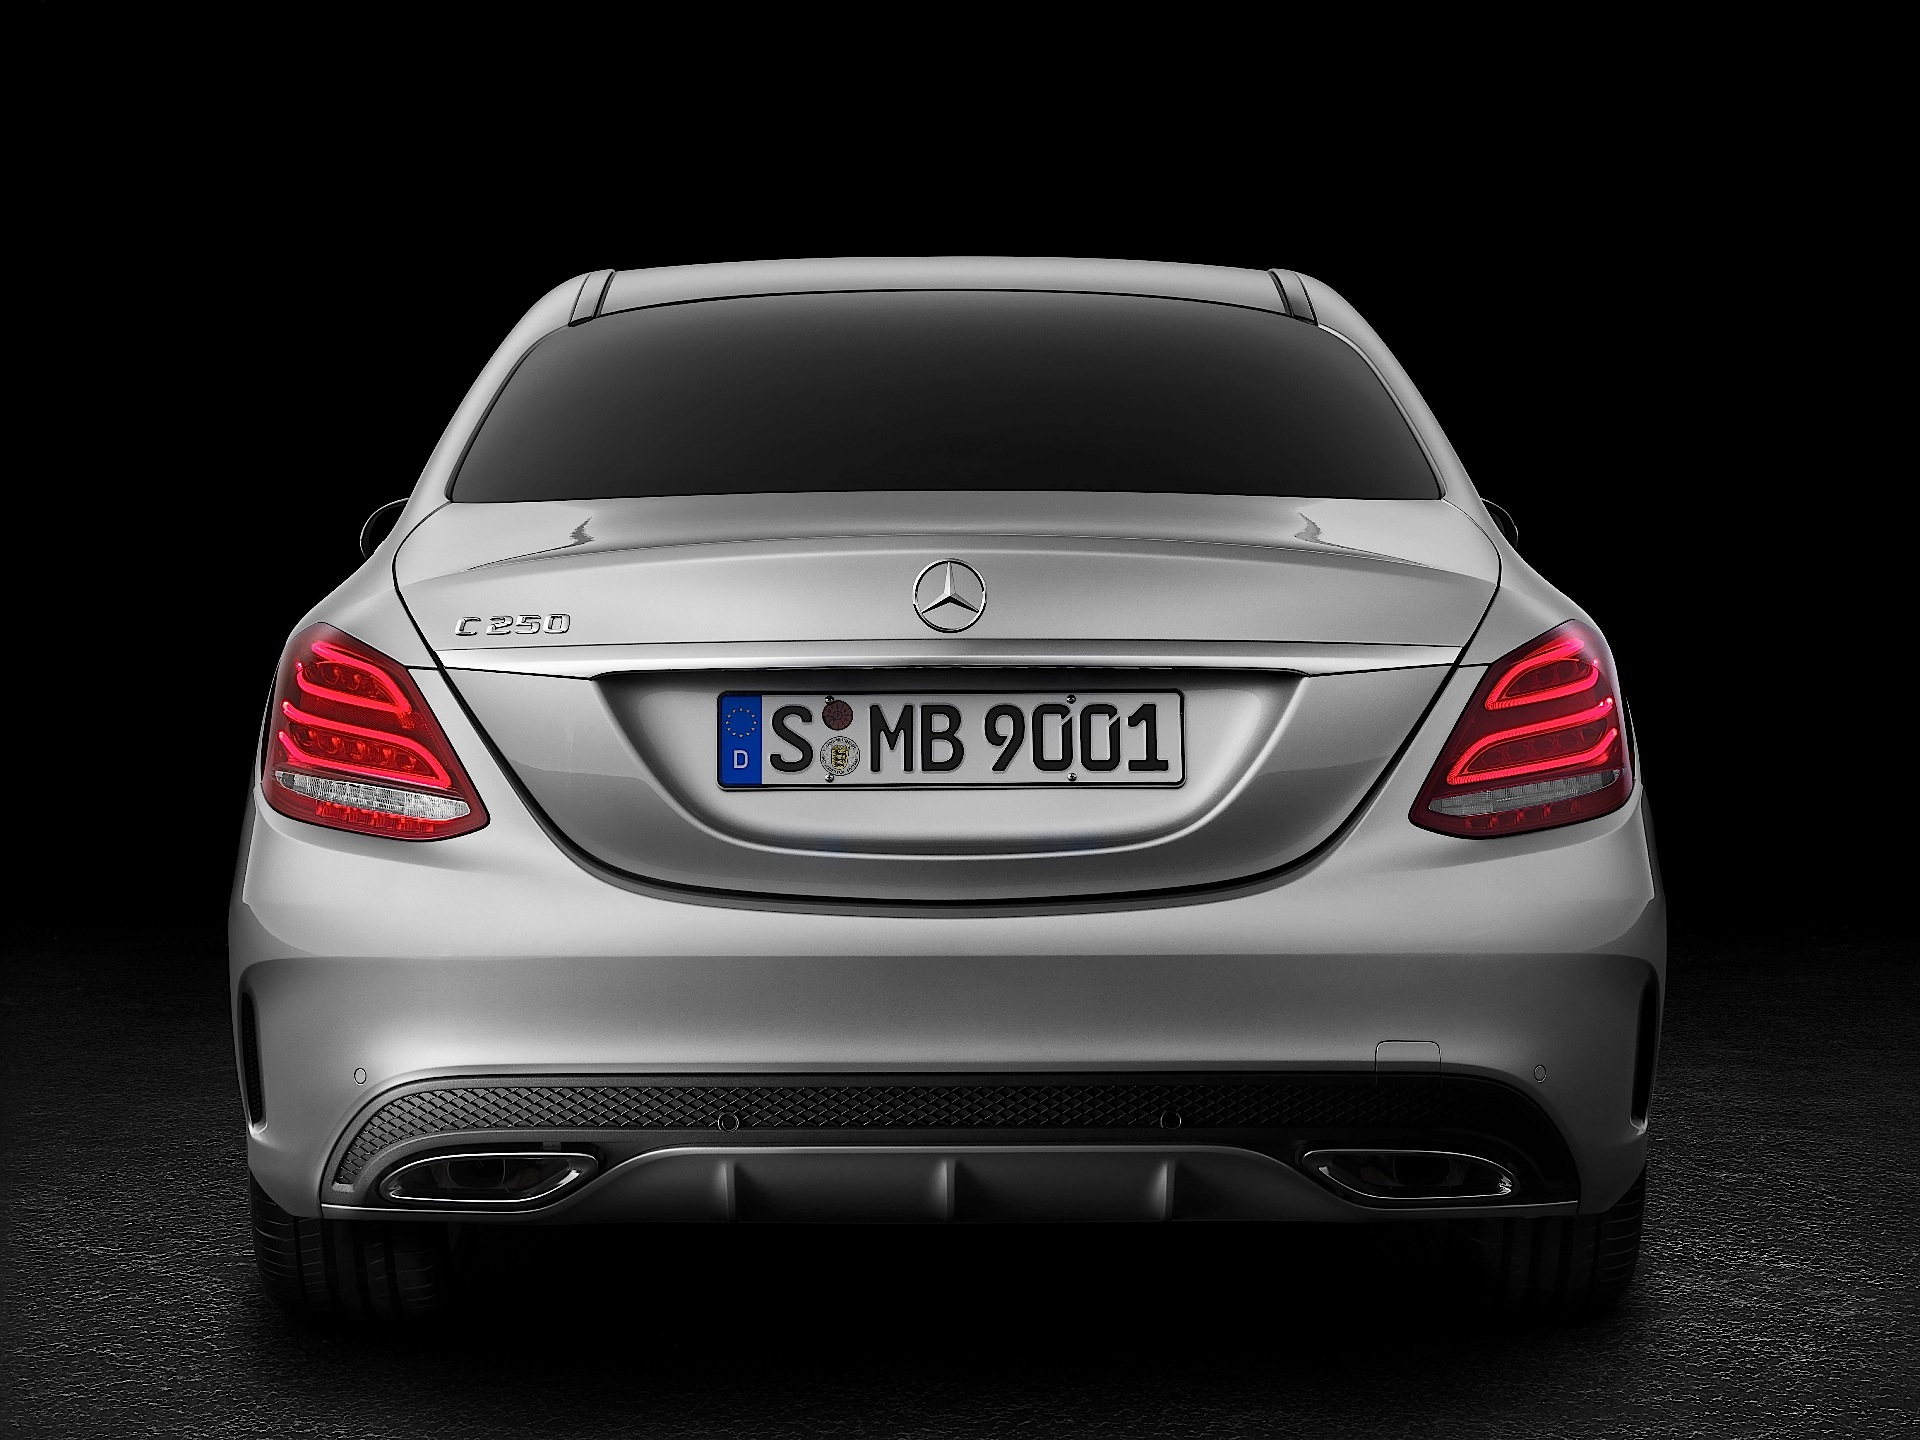 Mercedes Benz C Class W205 Specs Photos 2014 2015 2016 2017